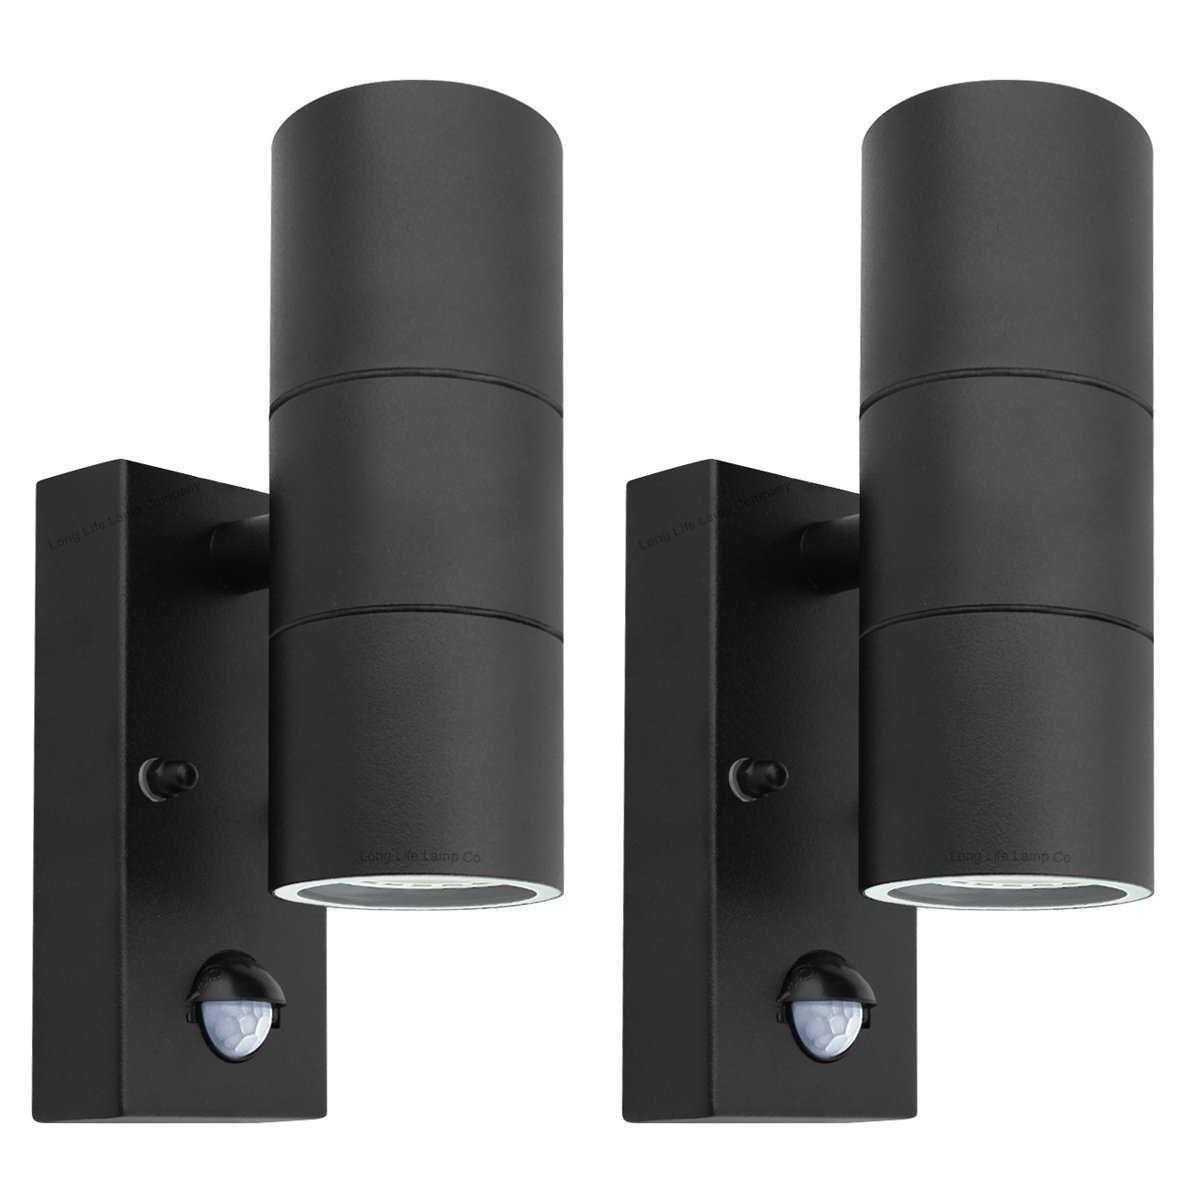 Black pir stainless steel double outdoor wall light with movement 2 x black pir stainless steel double outdoor wall light with movement sensor ip44 up aloadofball Images